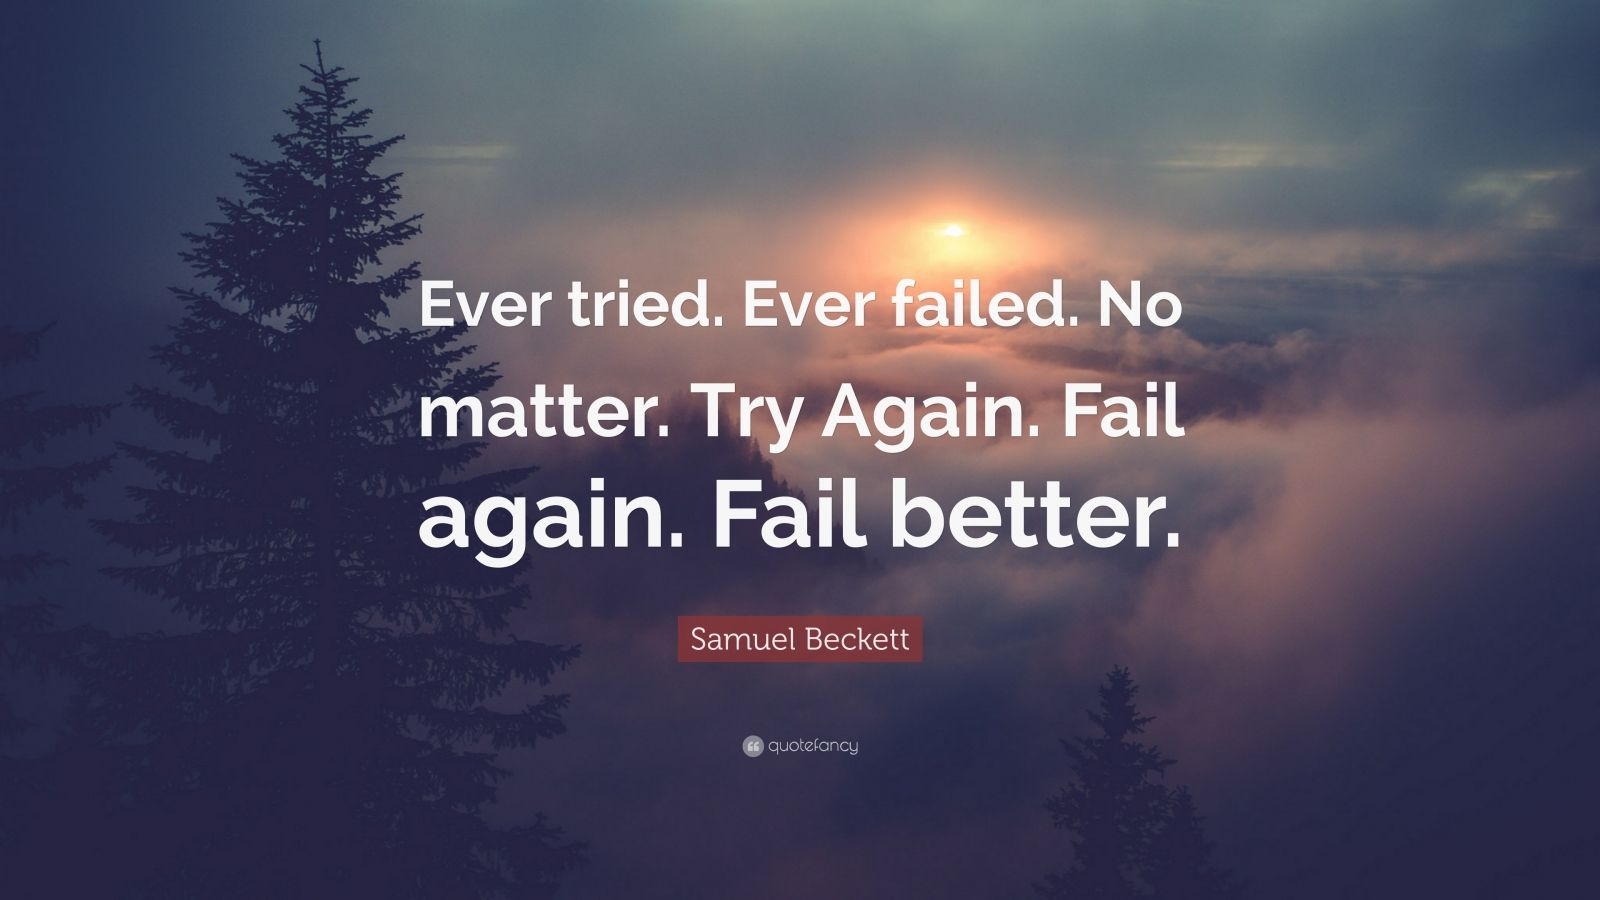 Motivational Wallpapers Hd Samuel Beckett Quote Ever Tried Ever Failed No Matter